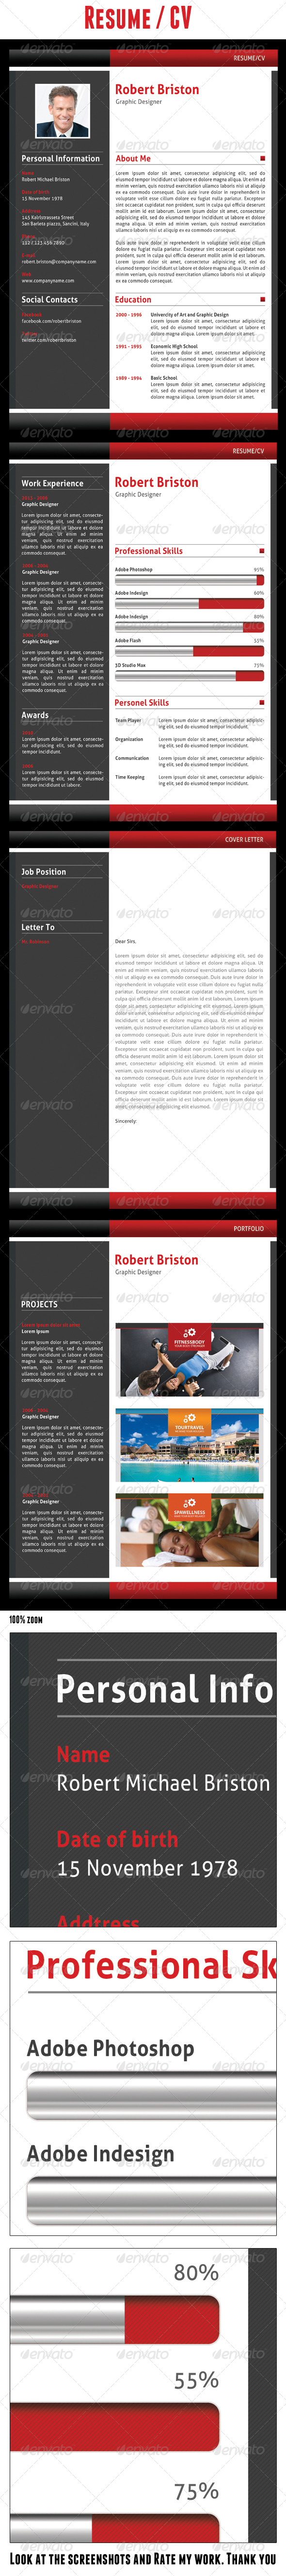 GraphicRiver Resume CV 5117750